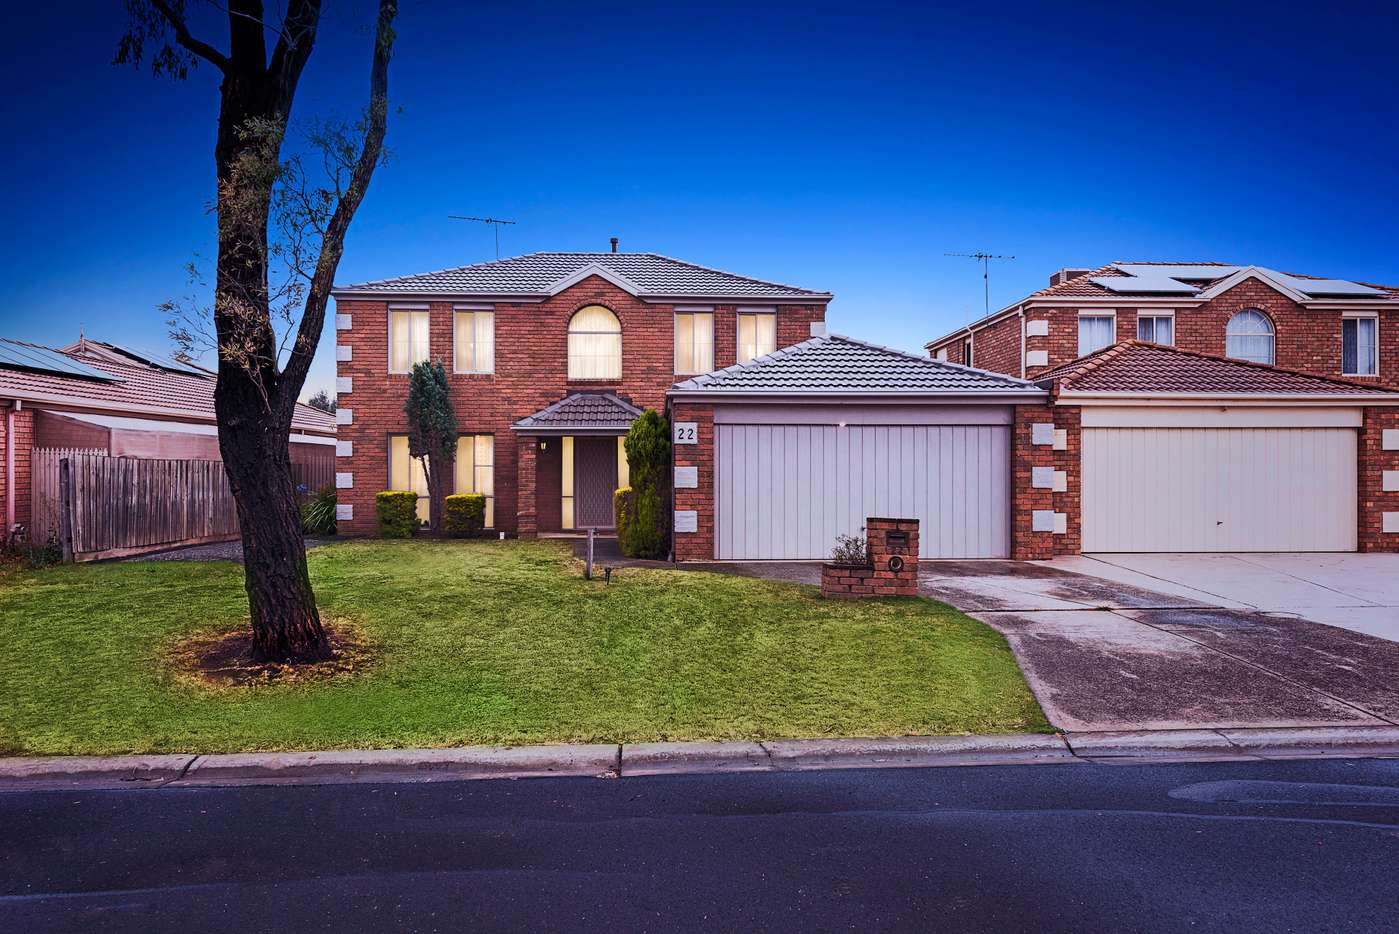 Main view of Homely house listing, 22 Kenmore Close, Hoppers Crossing, VIC 3029